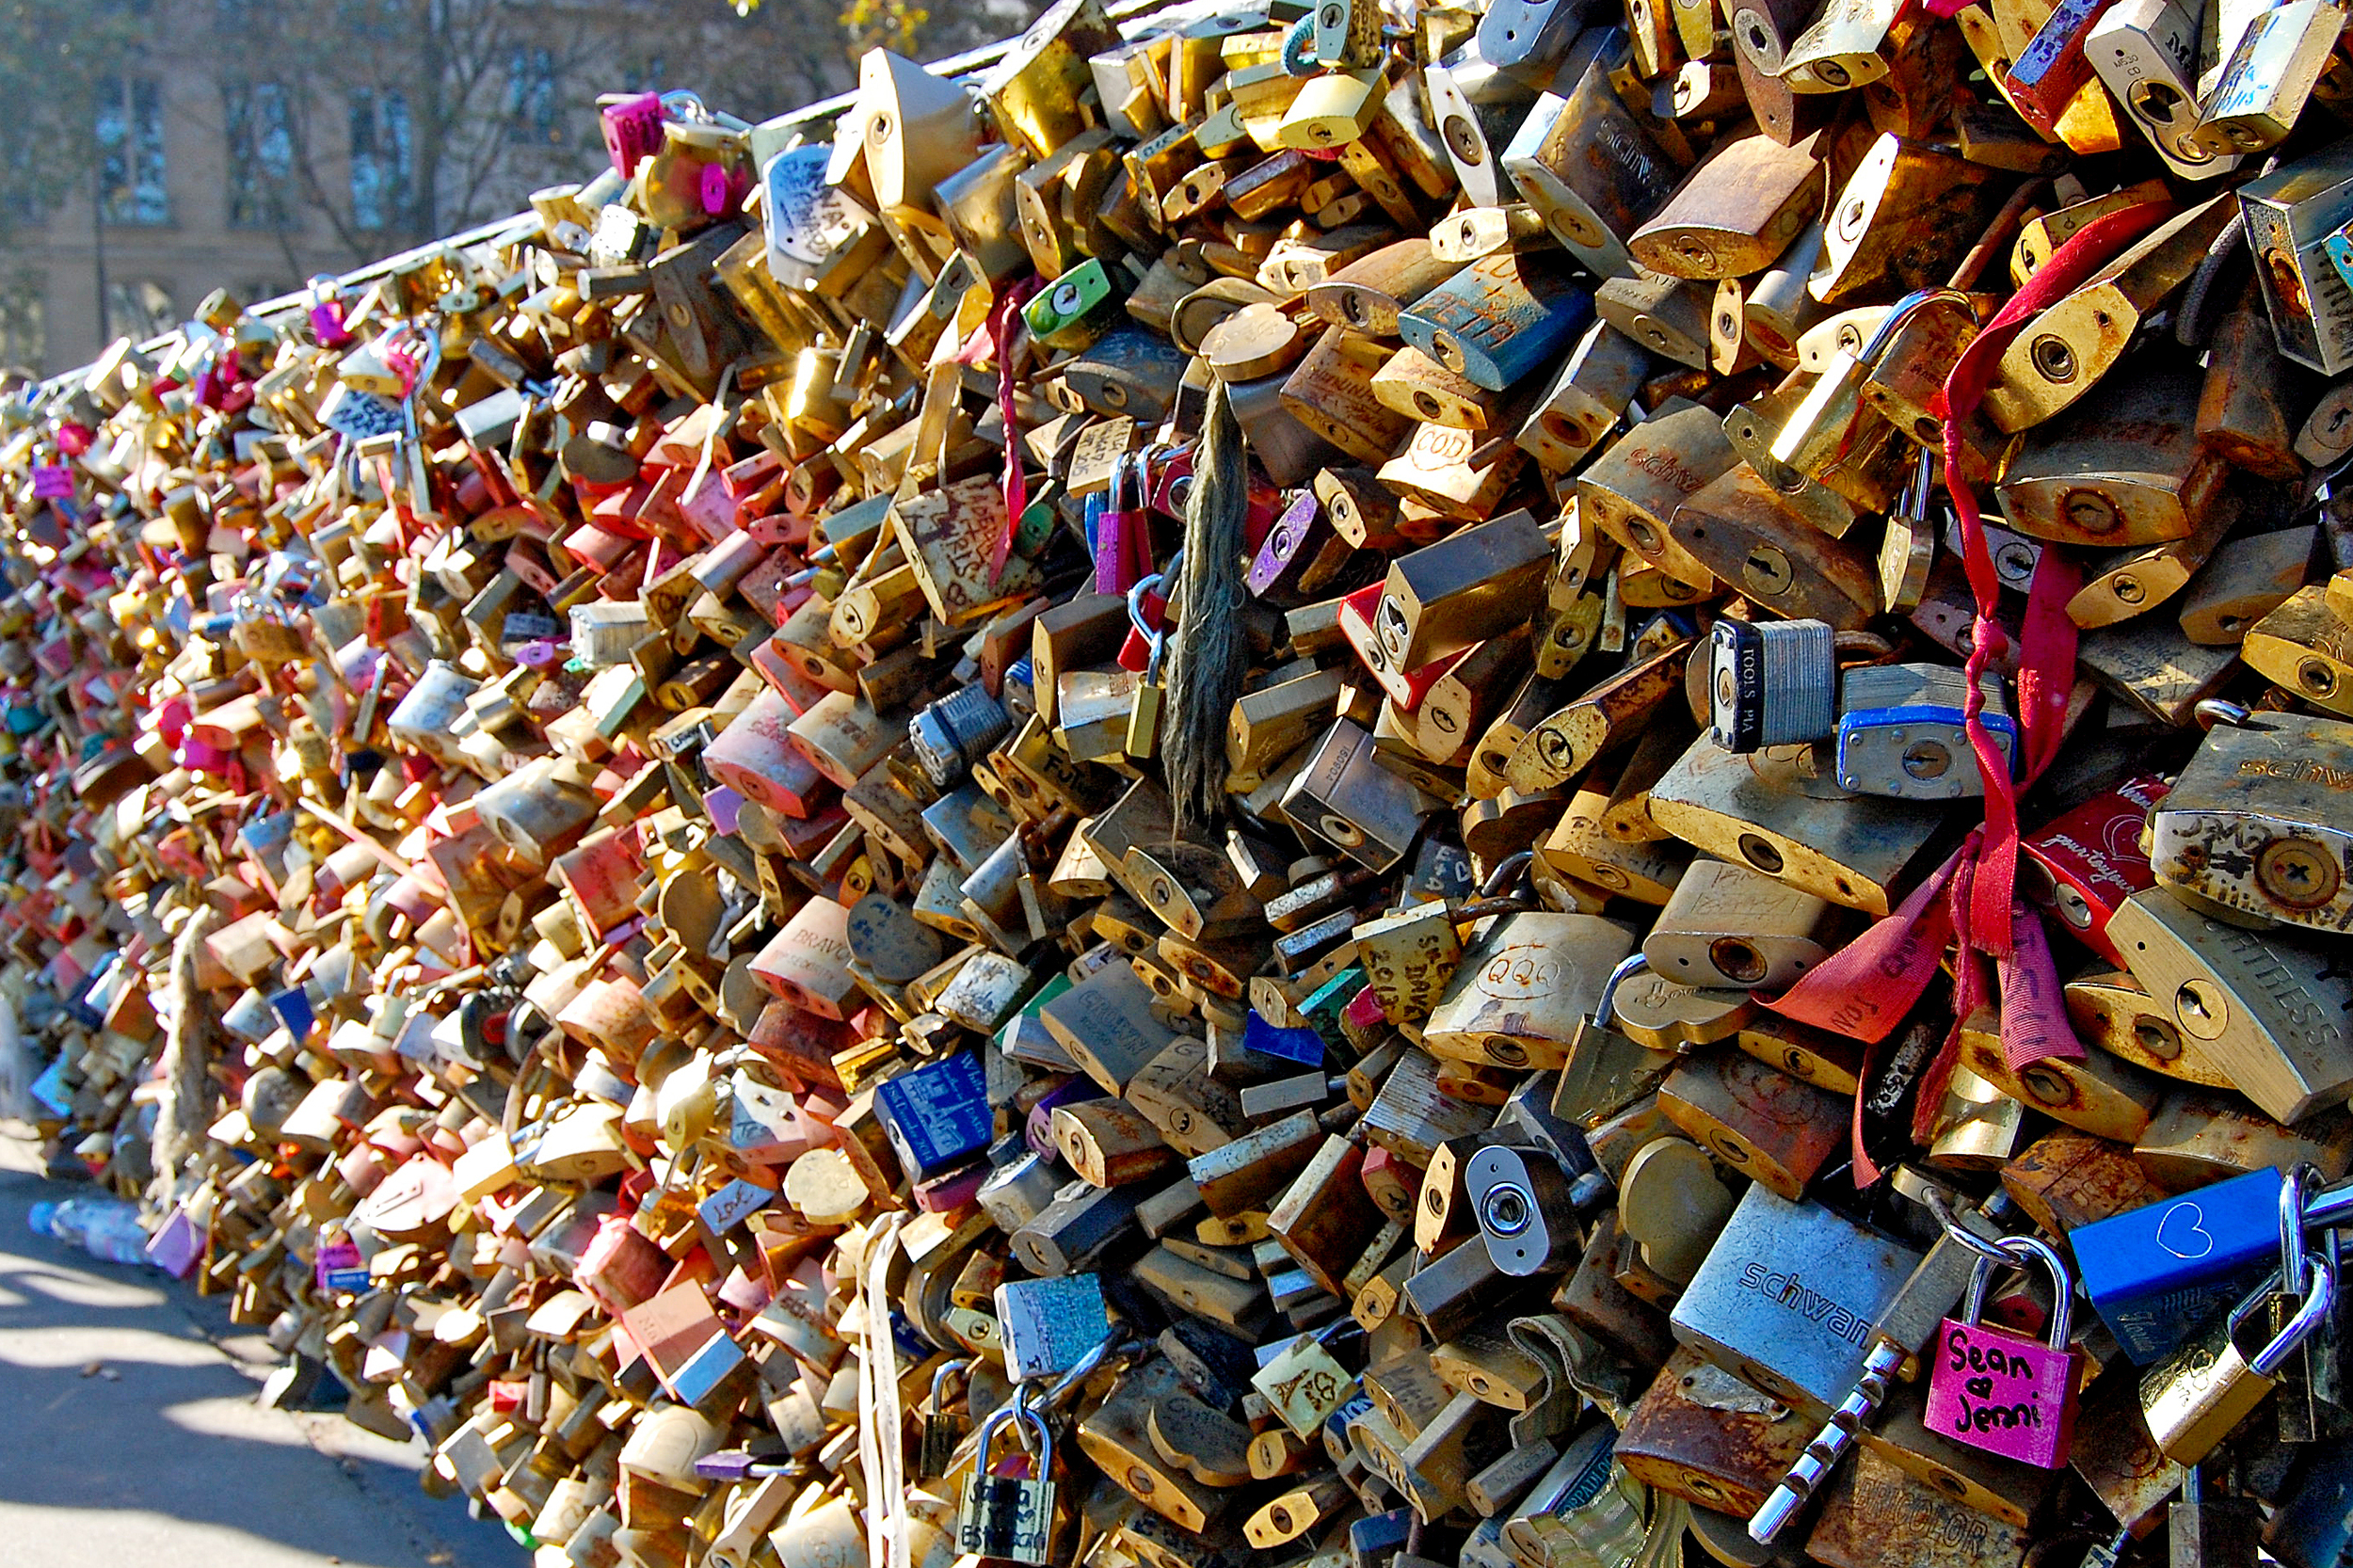 A bridge full of padlocks